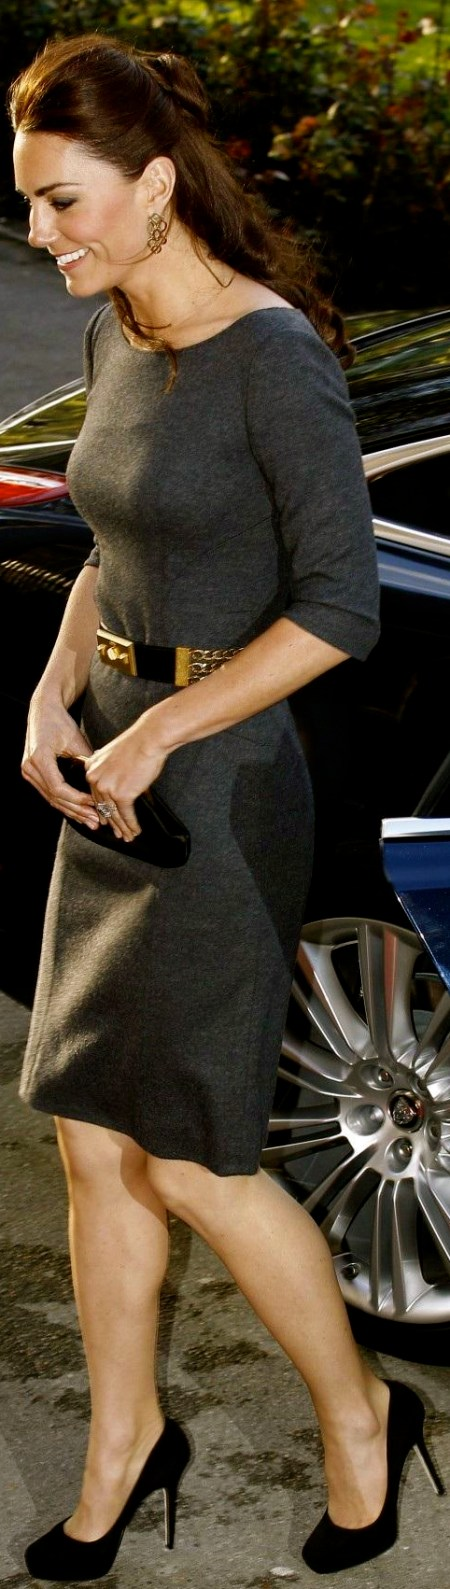 kate-middleton-wows-royal-fans-at-the-imperial-war-museum-reception-legs-1083044703